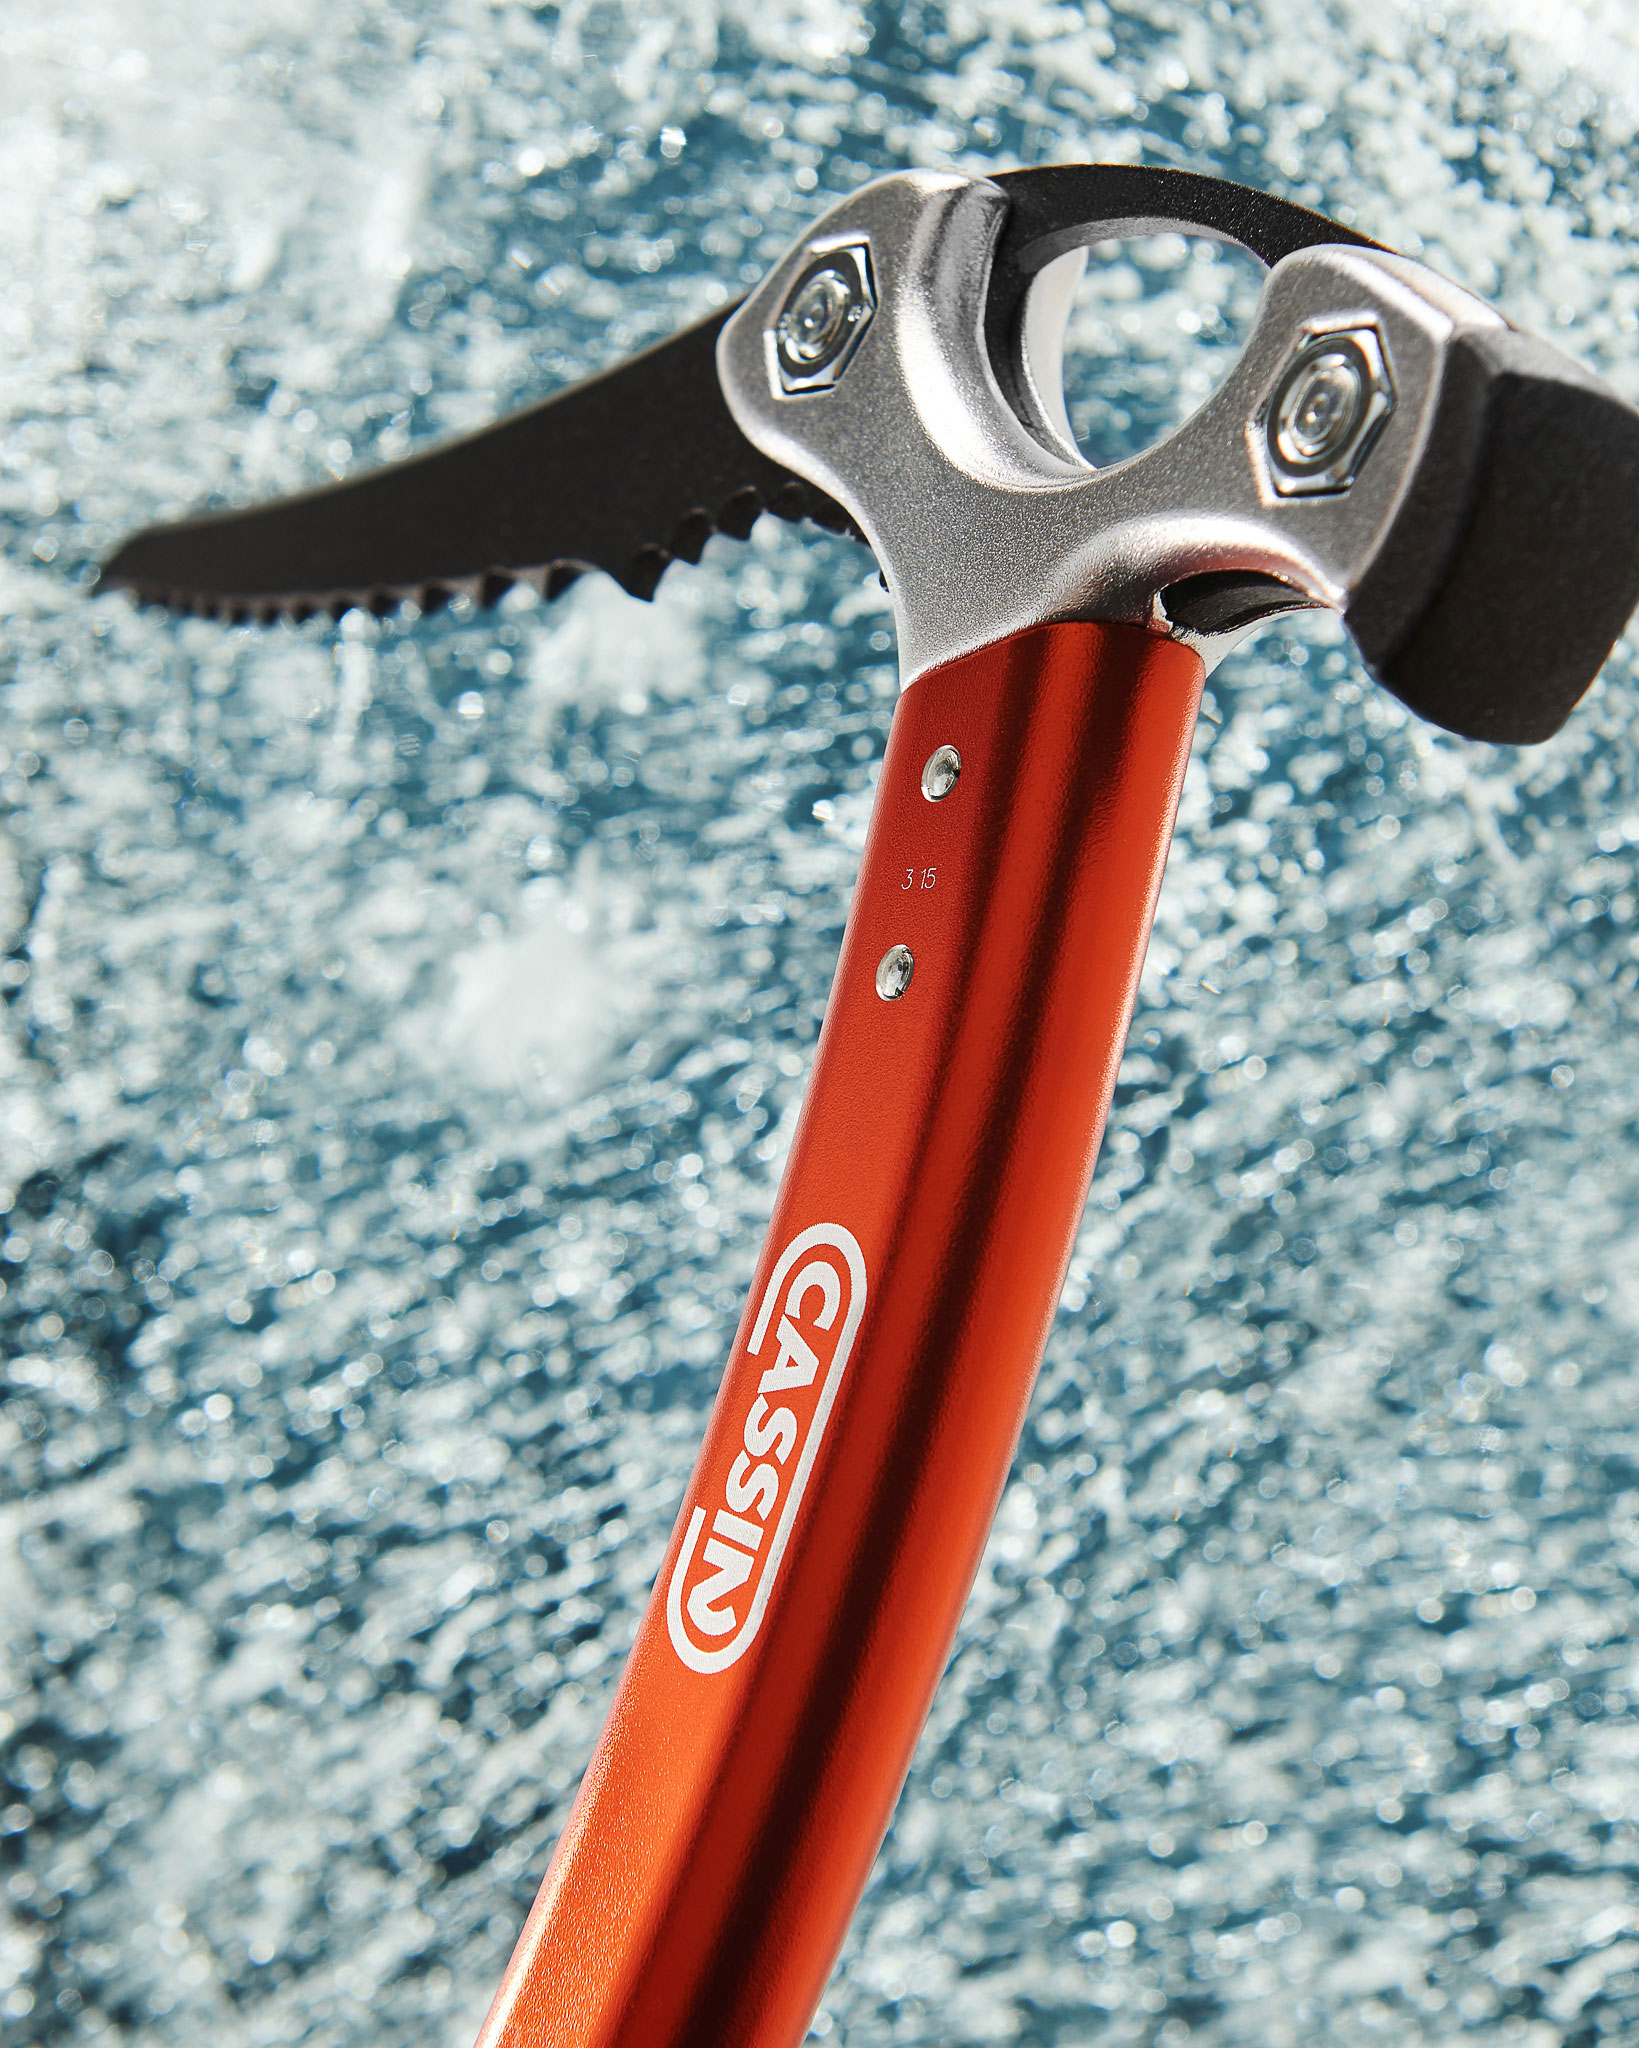 Detail of the ice axe striking the ice.